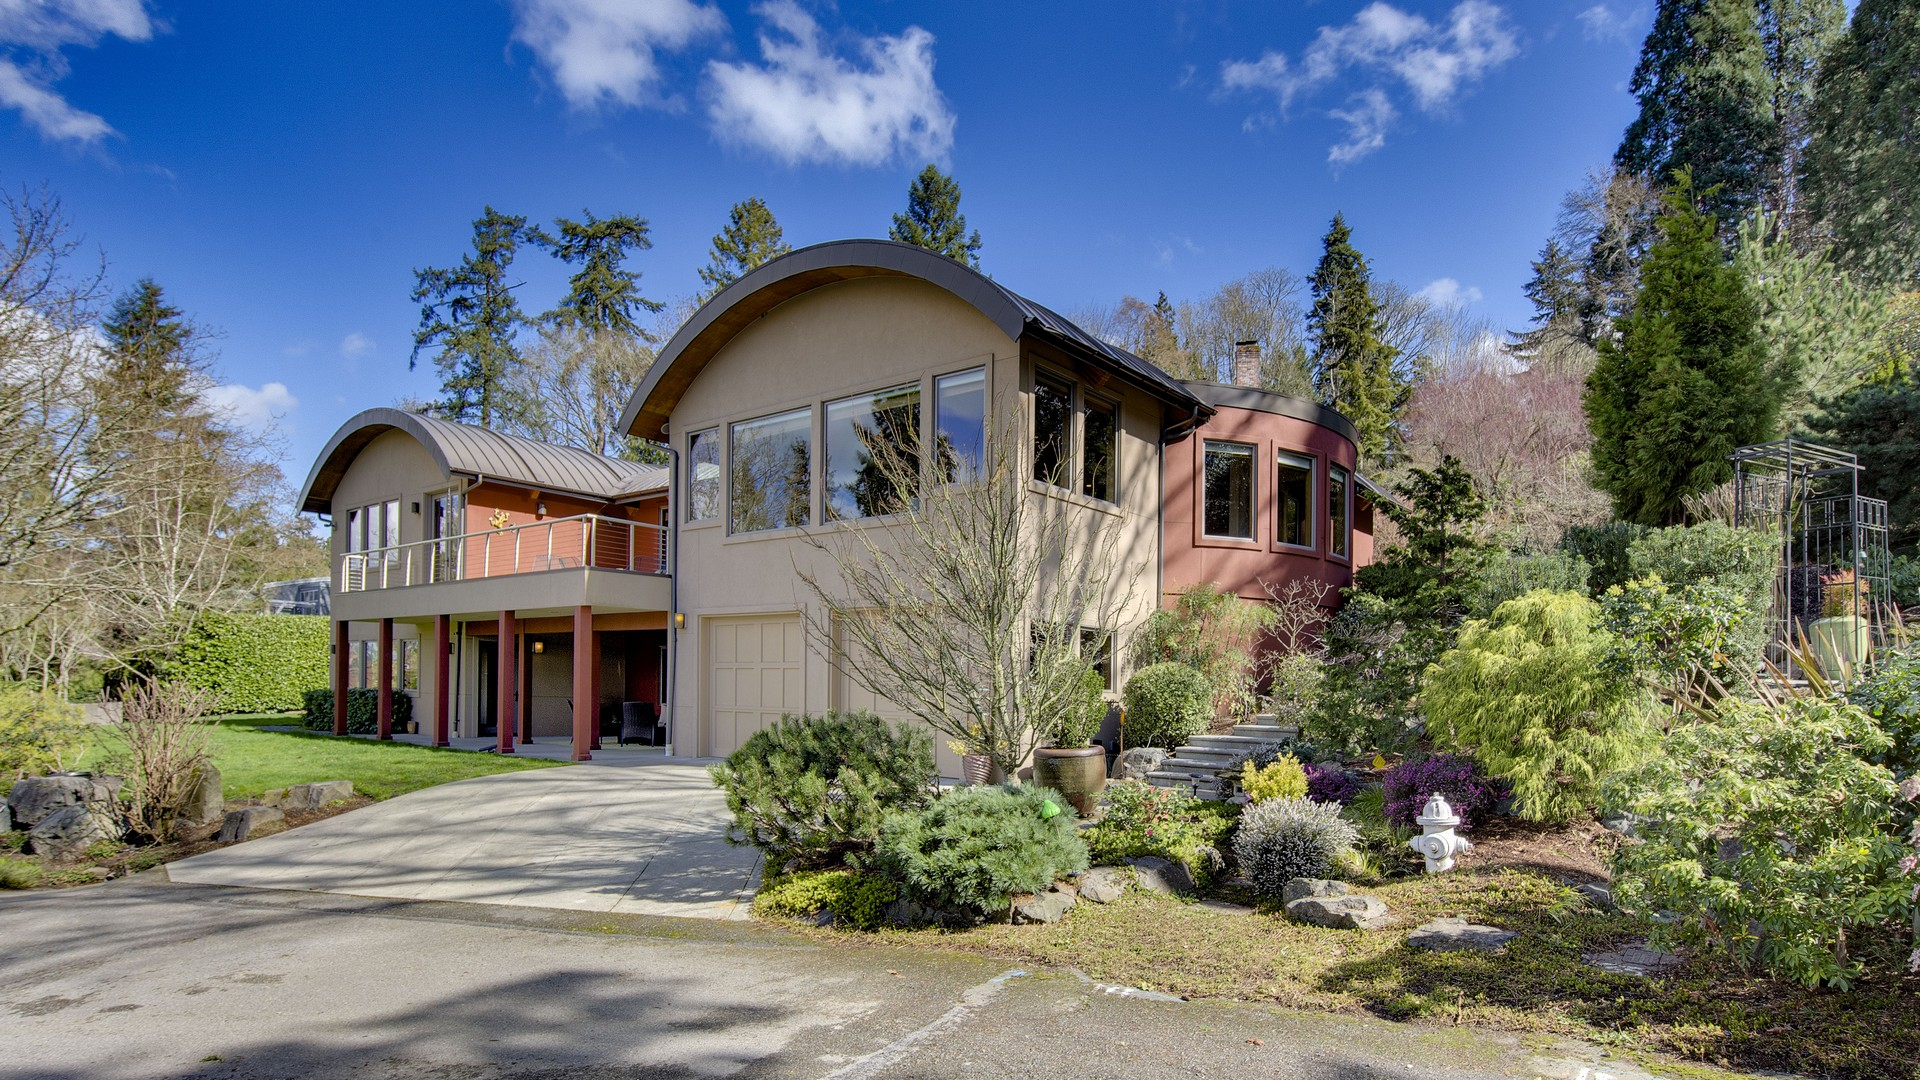 Single Family Home for Sale at Luxury Mercer Island Home 5335 W Mercer Wy Mercer Island, Washington, 98040 United States